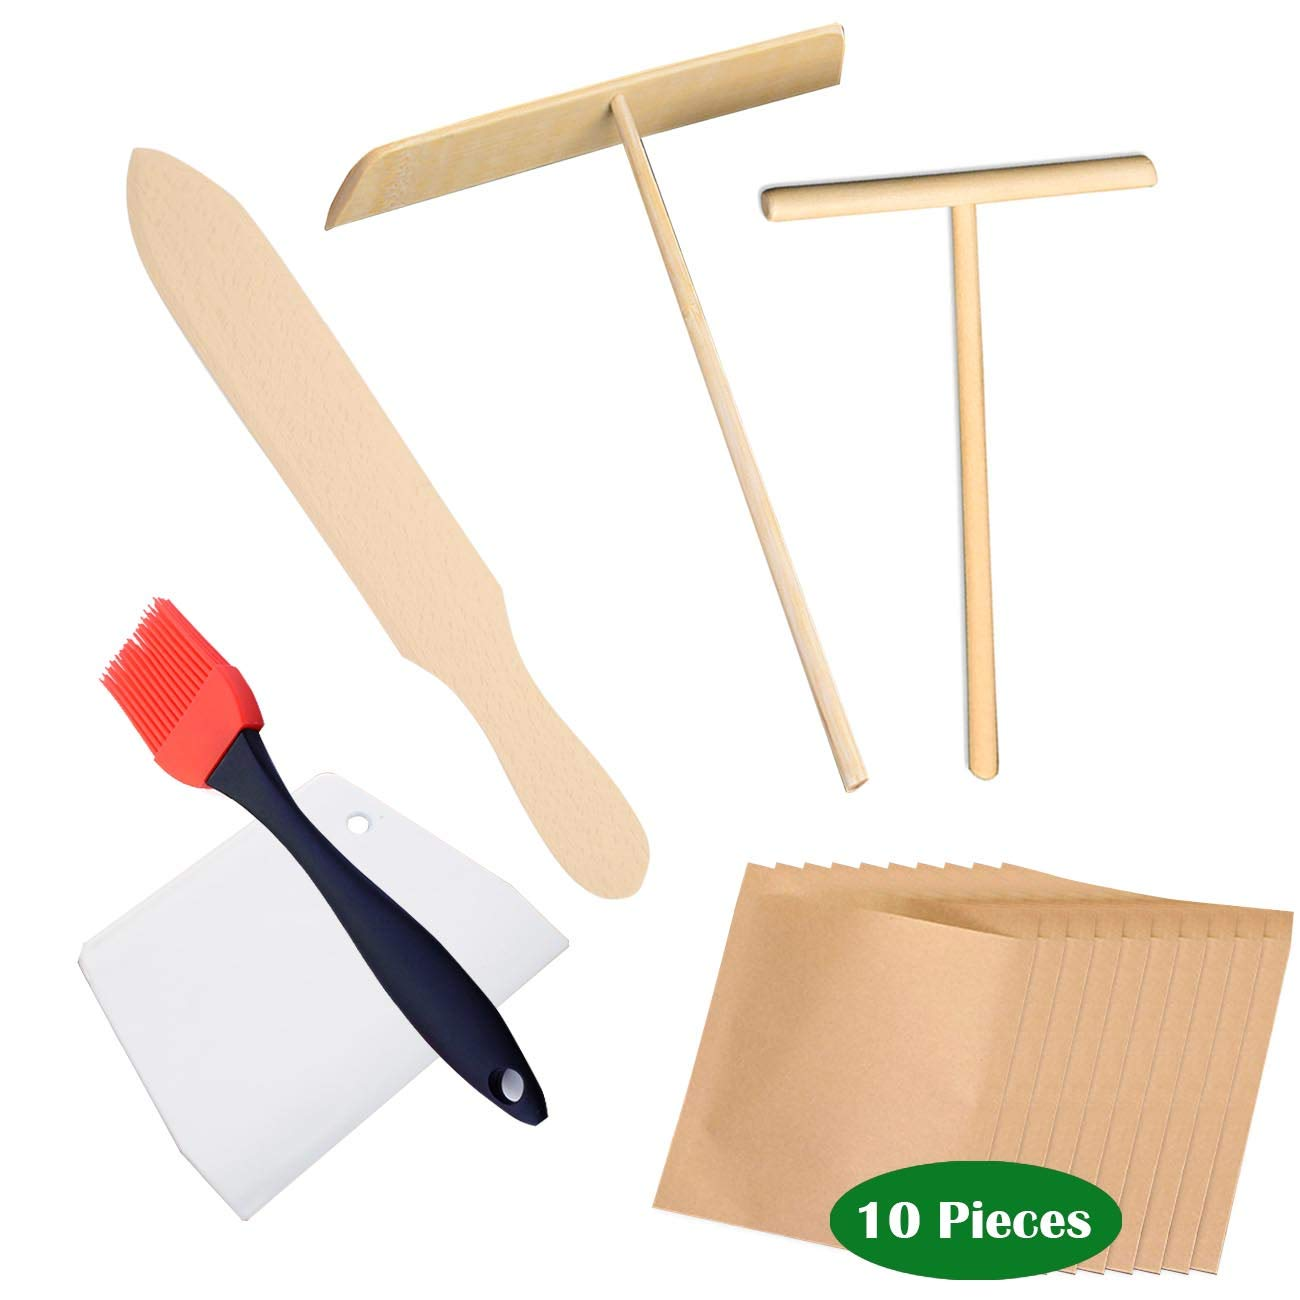 Natural Beechwood Crepe Spreader & Spatula Set r (15 Piecer) | 7'', 5'', Spreaders and 11.6'' Spatula | Food kraft paper bag| Convenient Sizes to Fit Any Crepe Pan Maker | Premium Finish |Home Kitchen/cafe | Breakfast Pancakes by 9M9